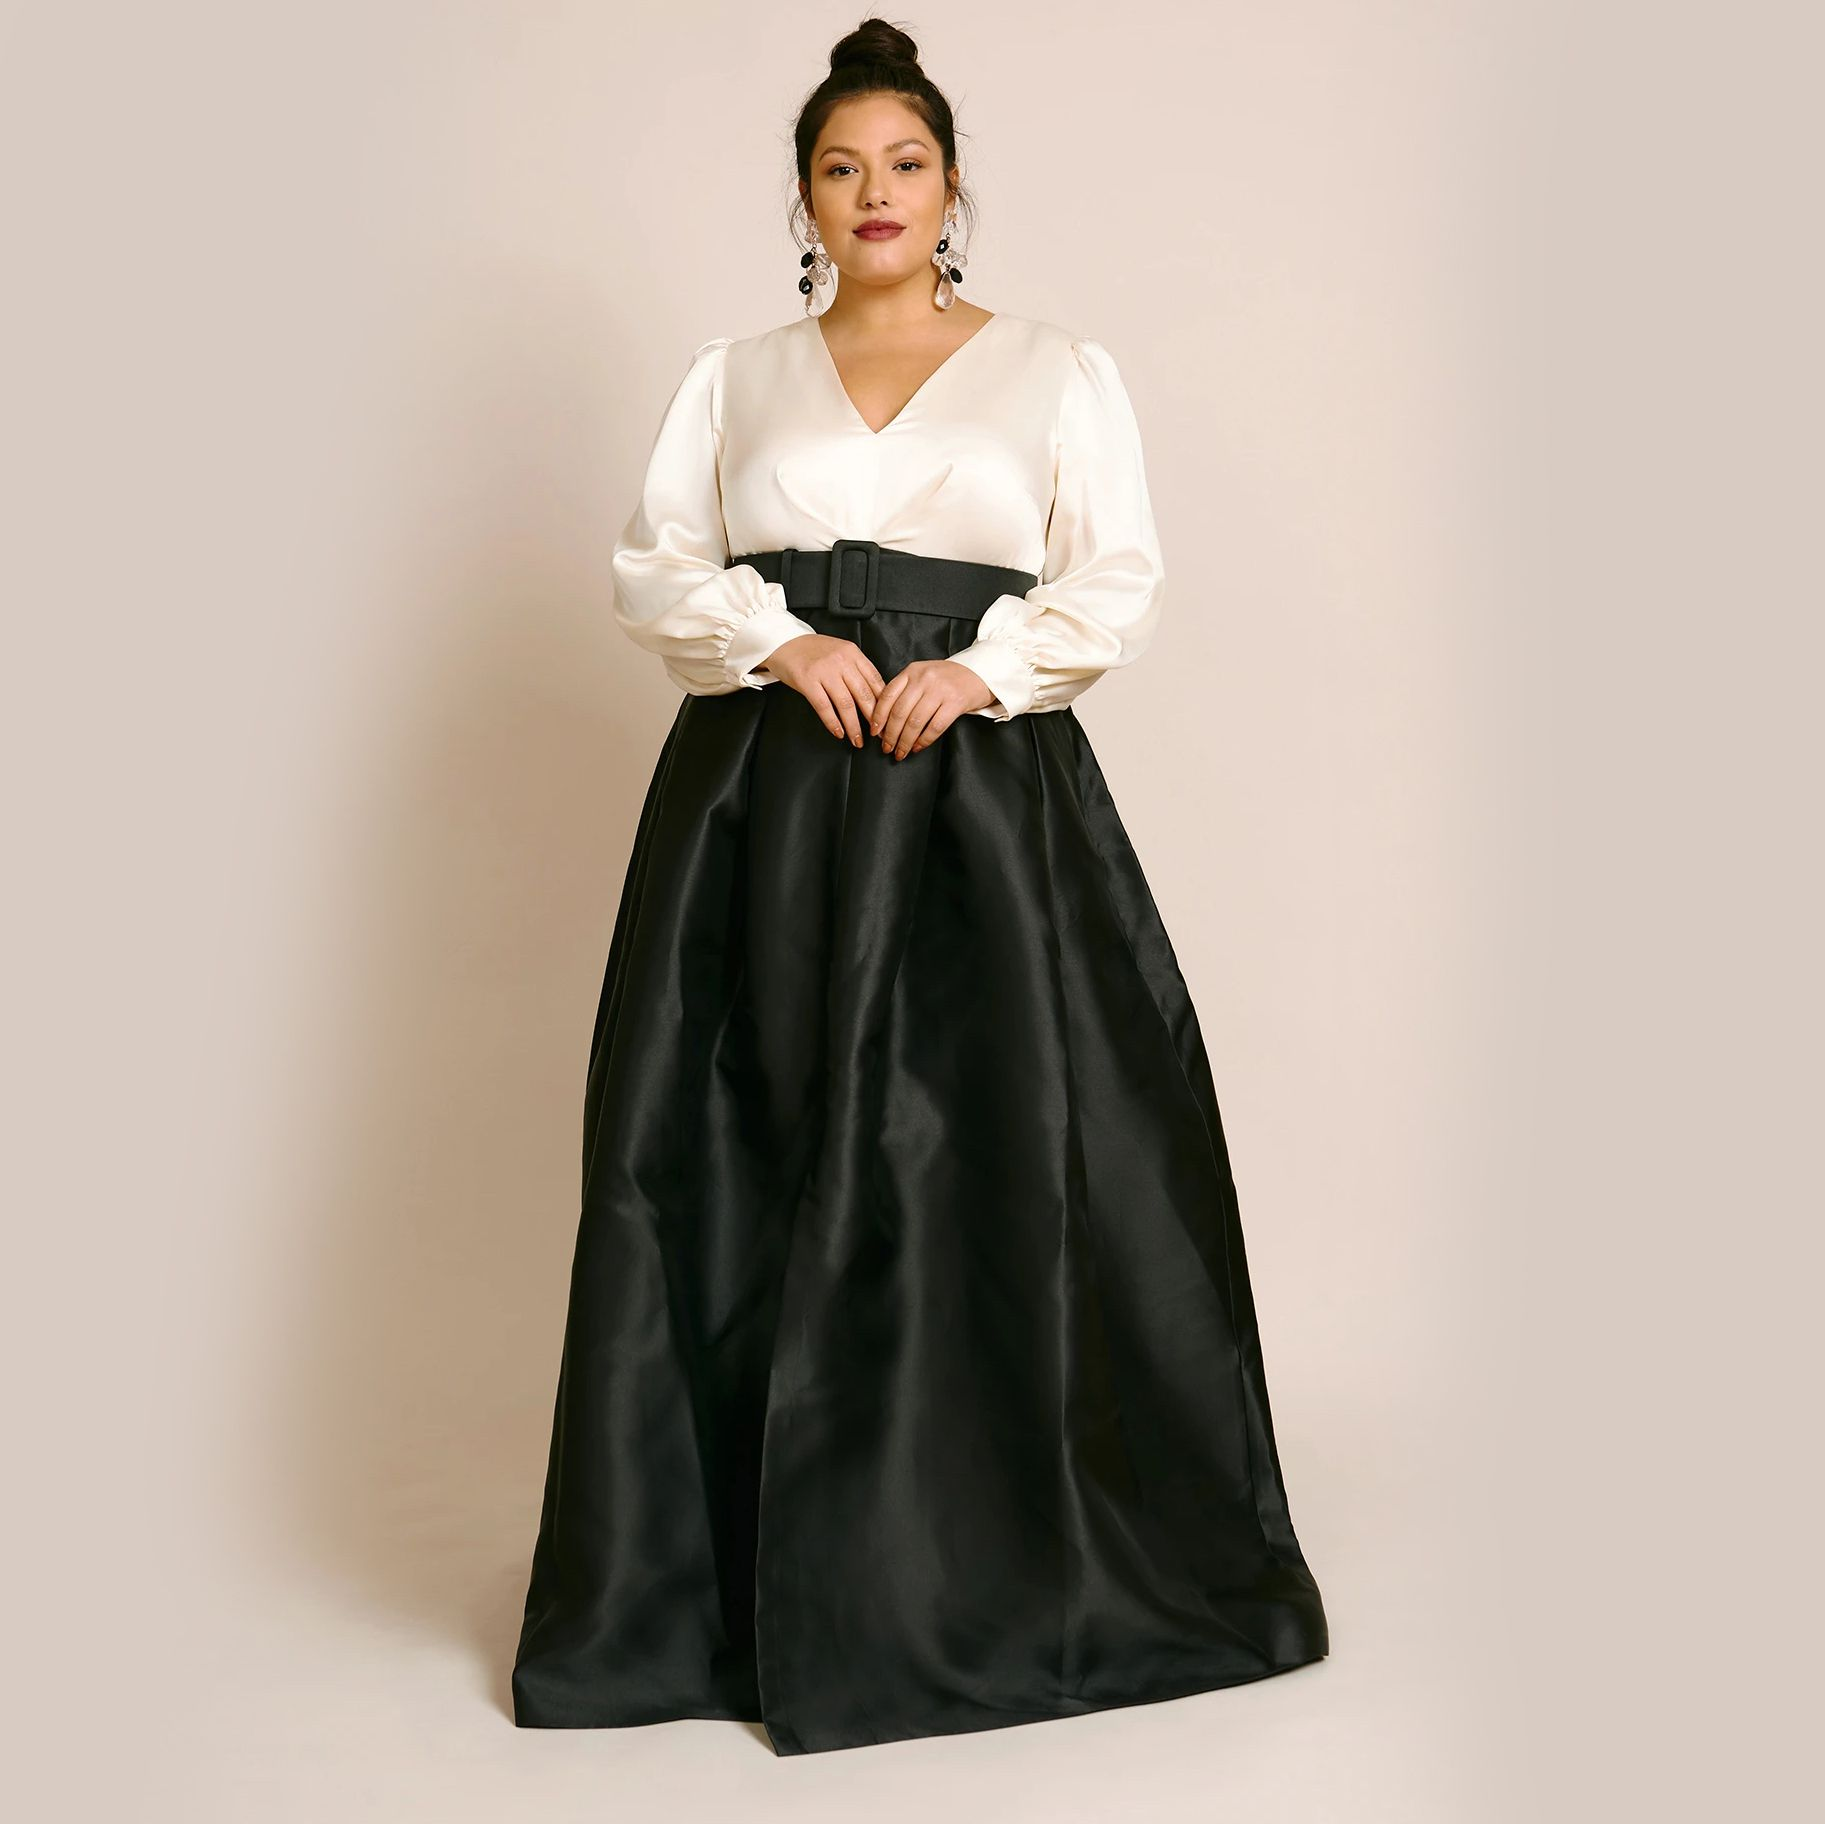 8 Best Plus Size Mother of the Groom Dresses of 8